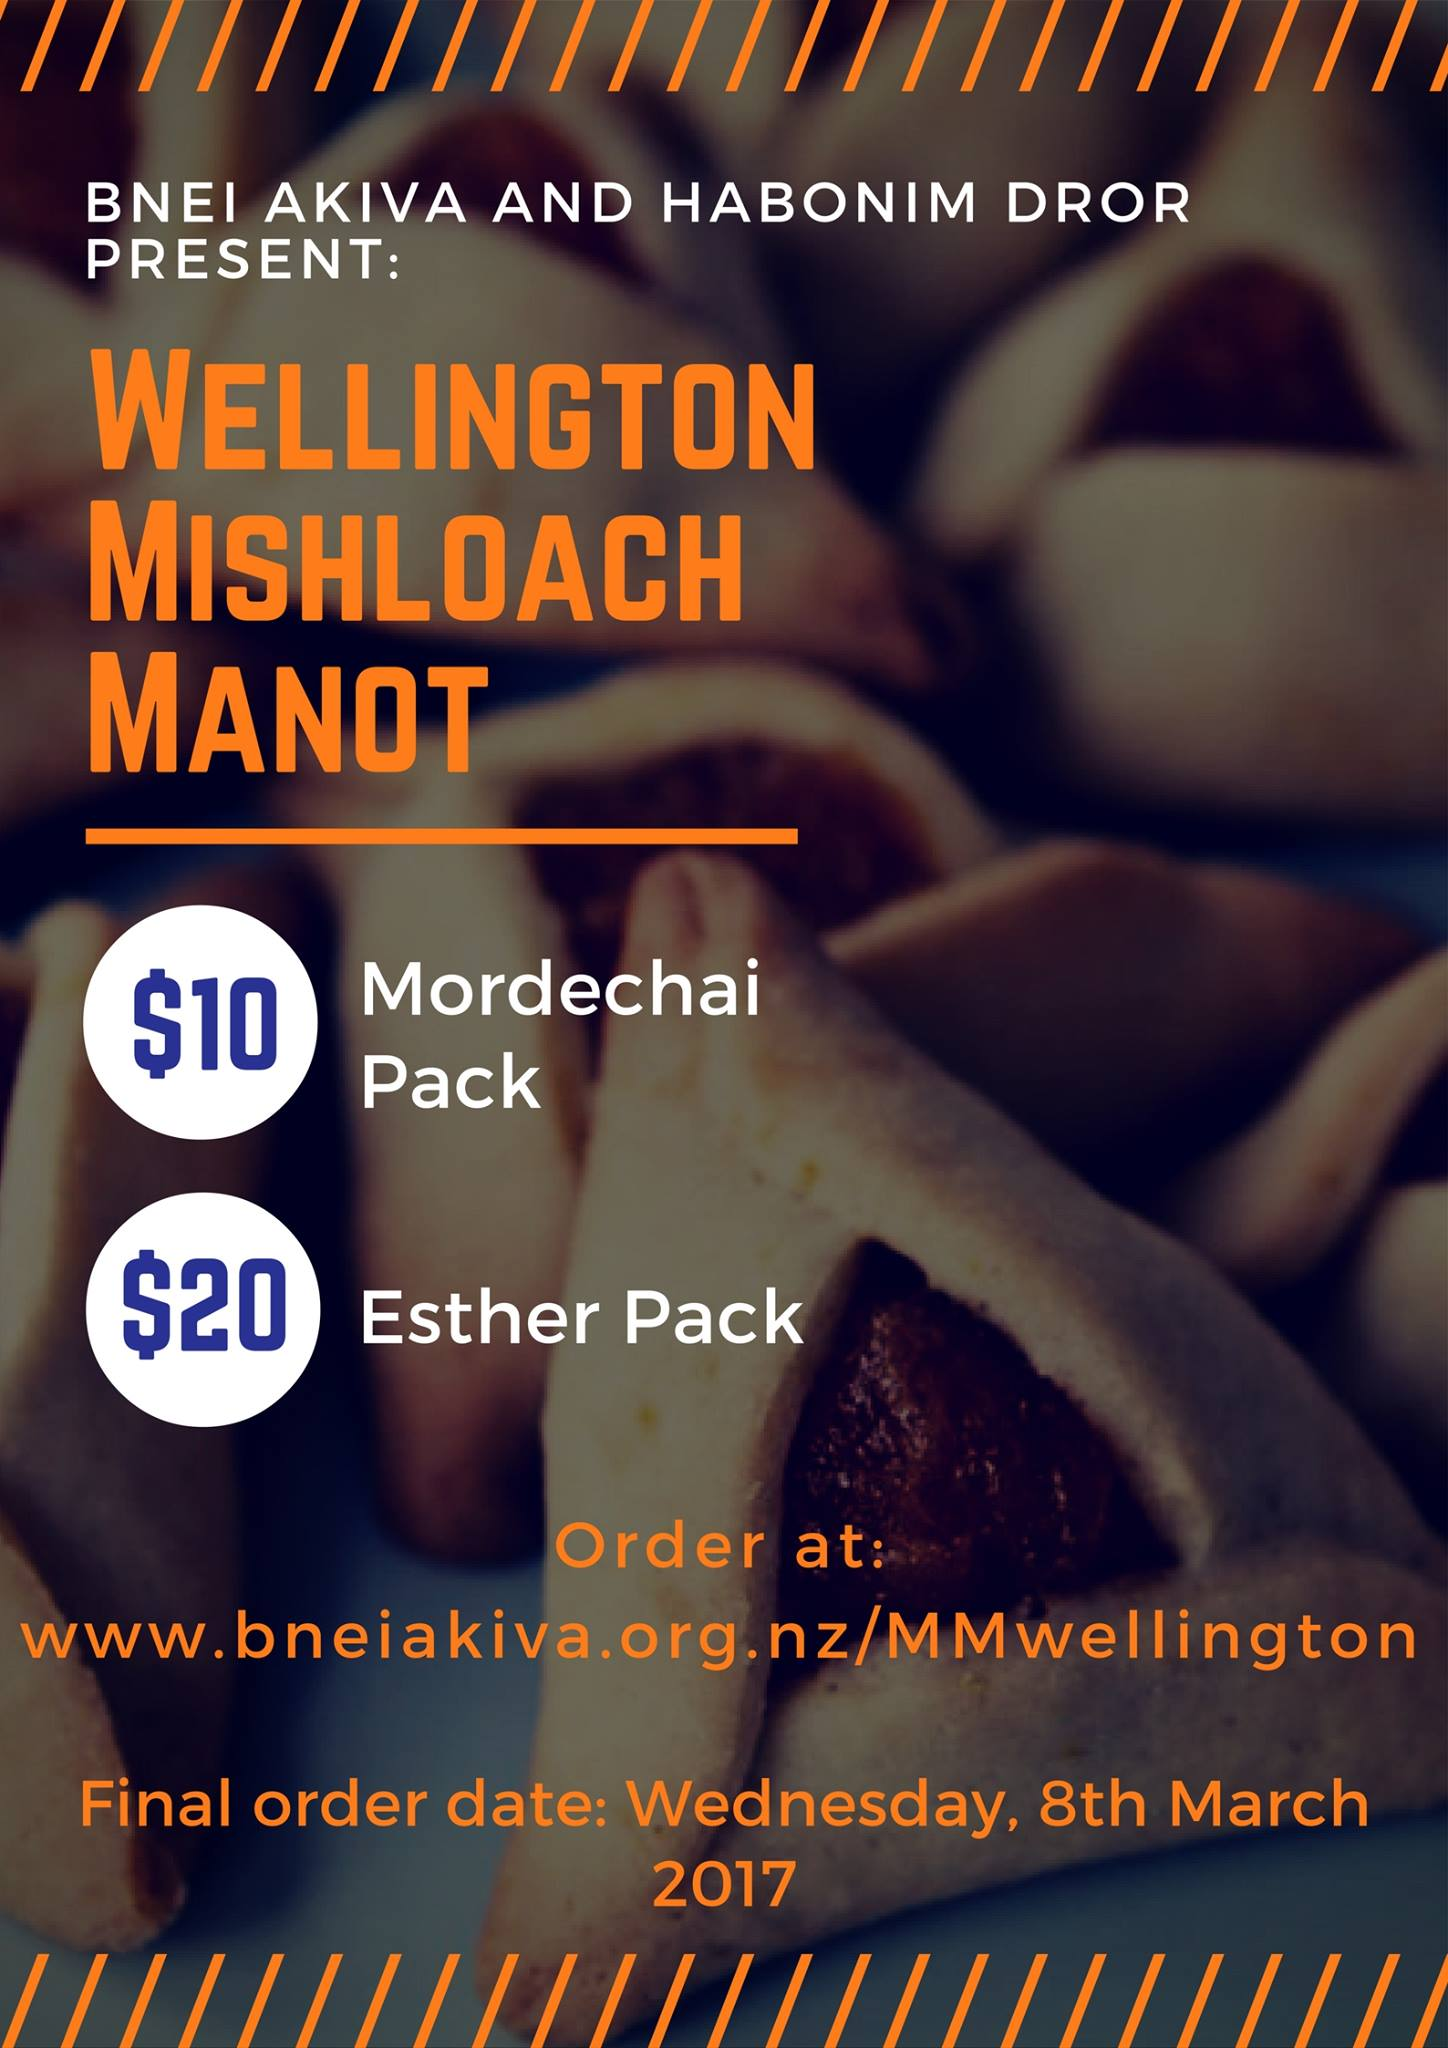 Wellington Mishloach Manot!